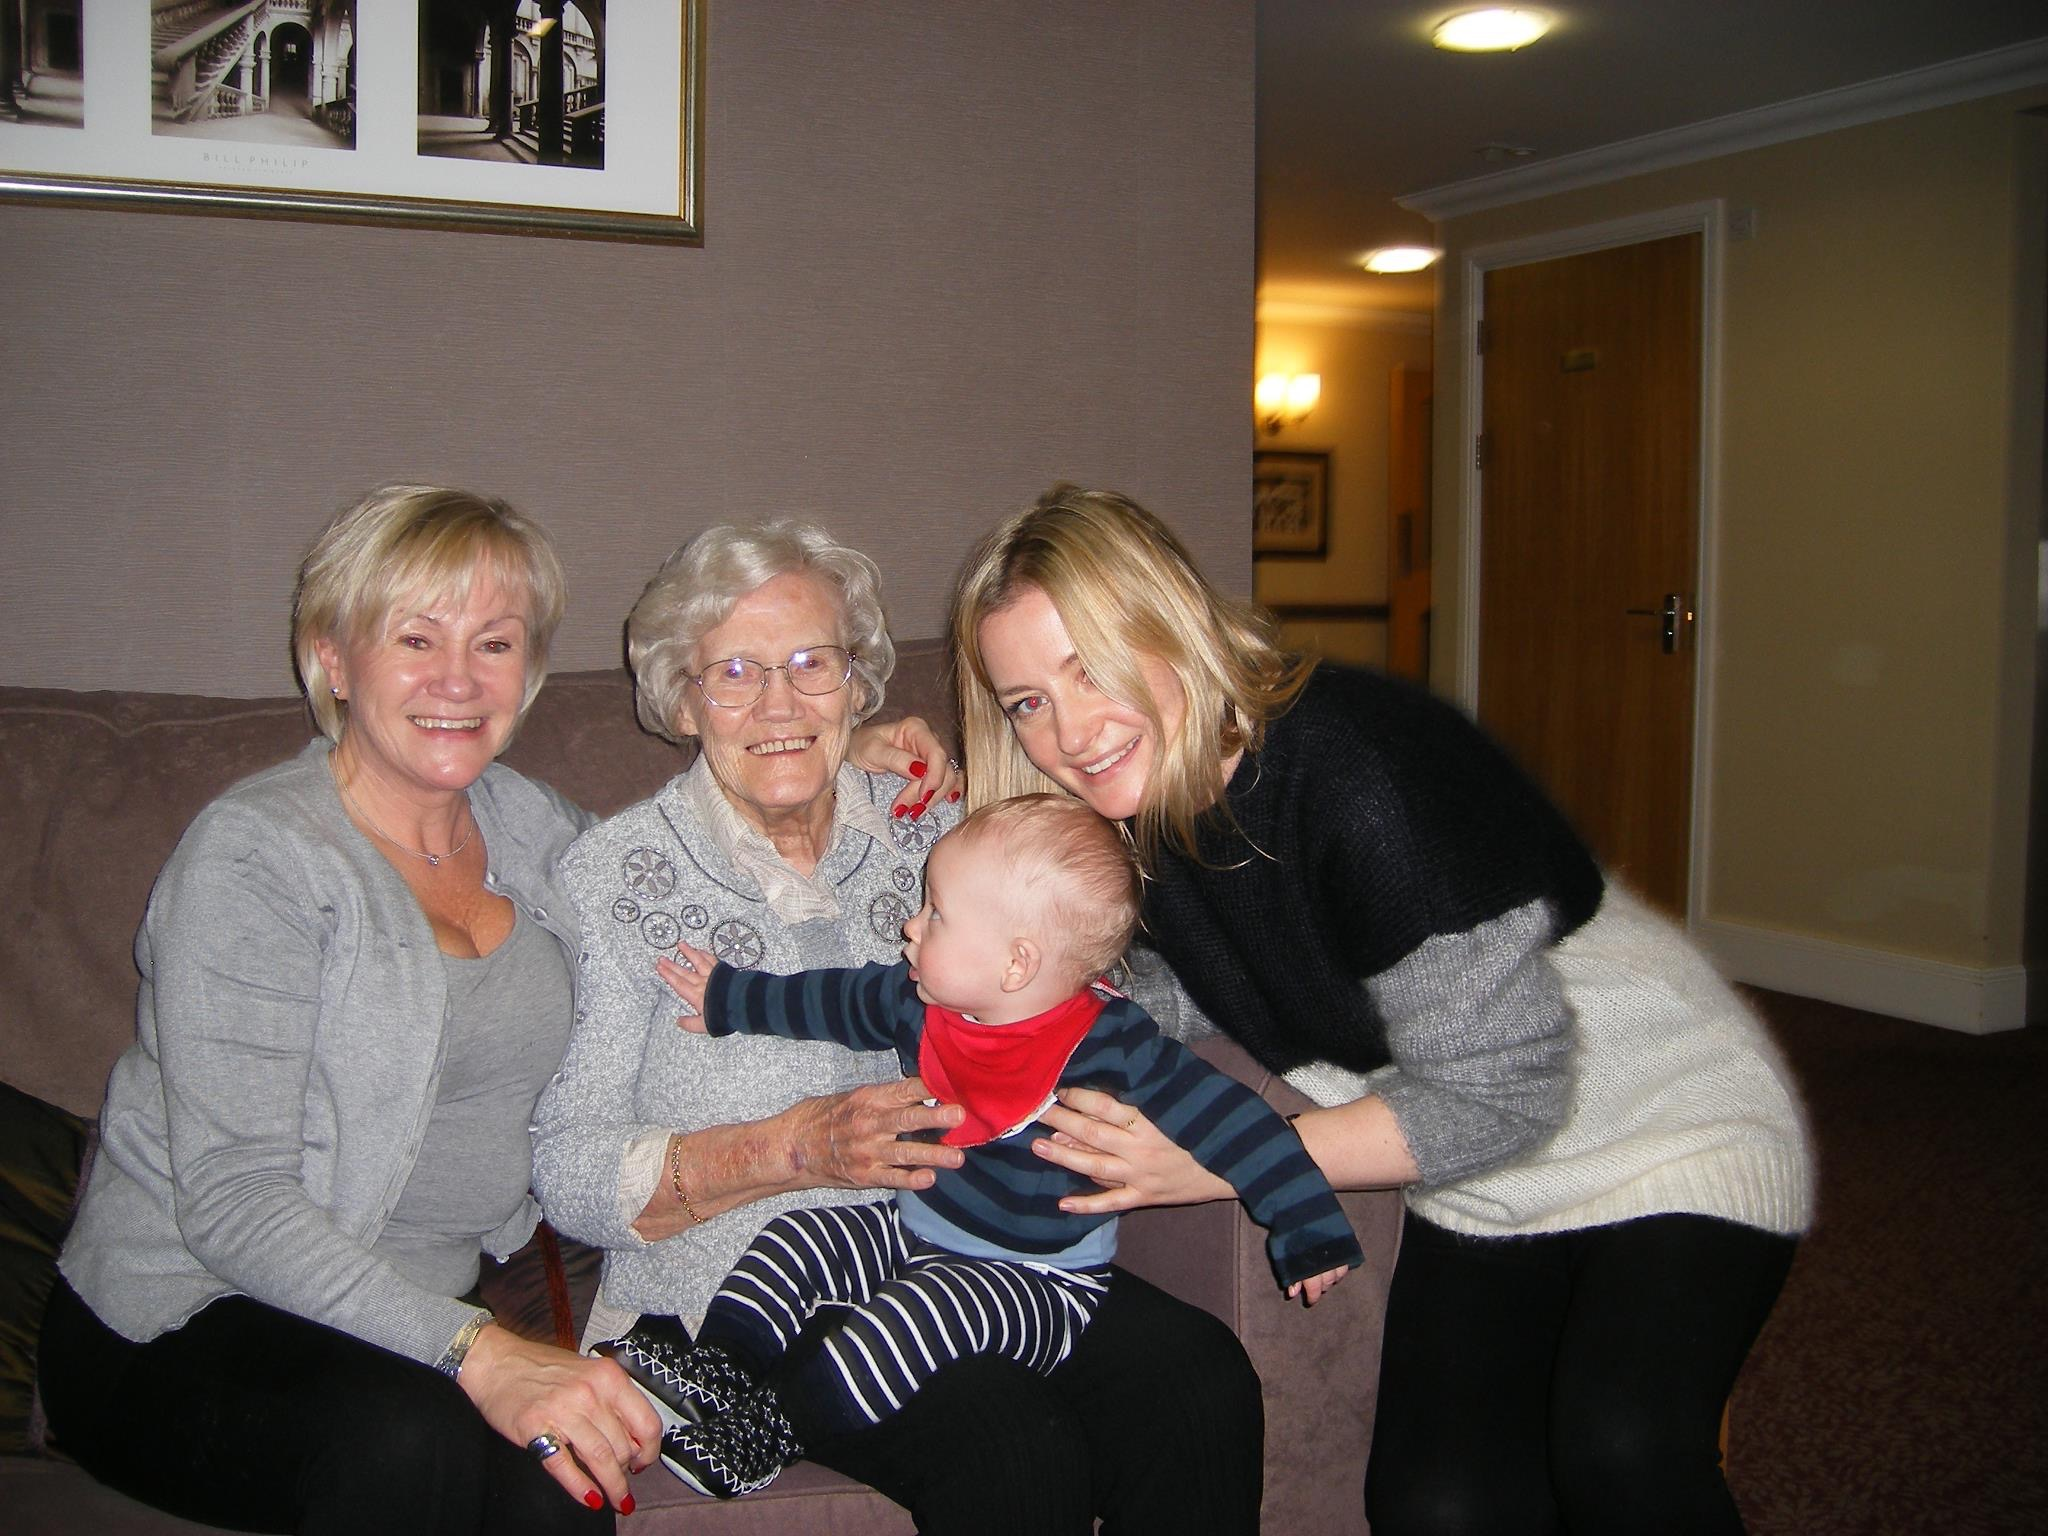 Stacey Duguid with mother, grandmother and baby